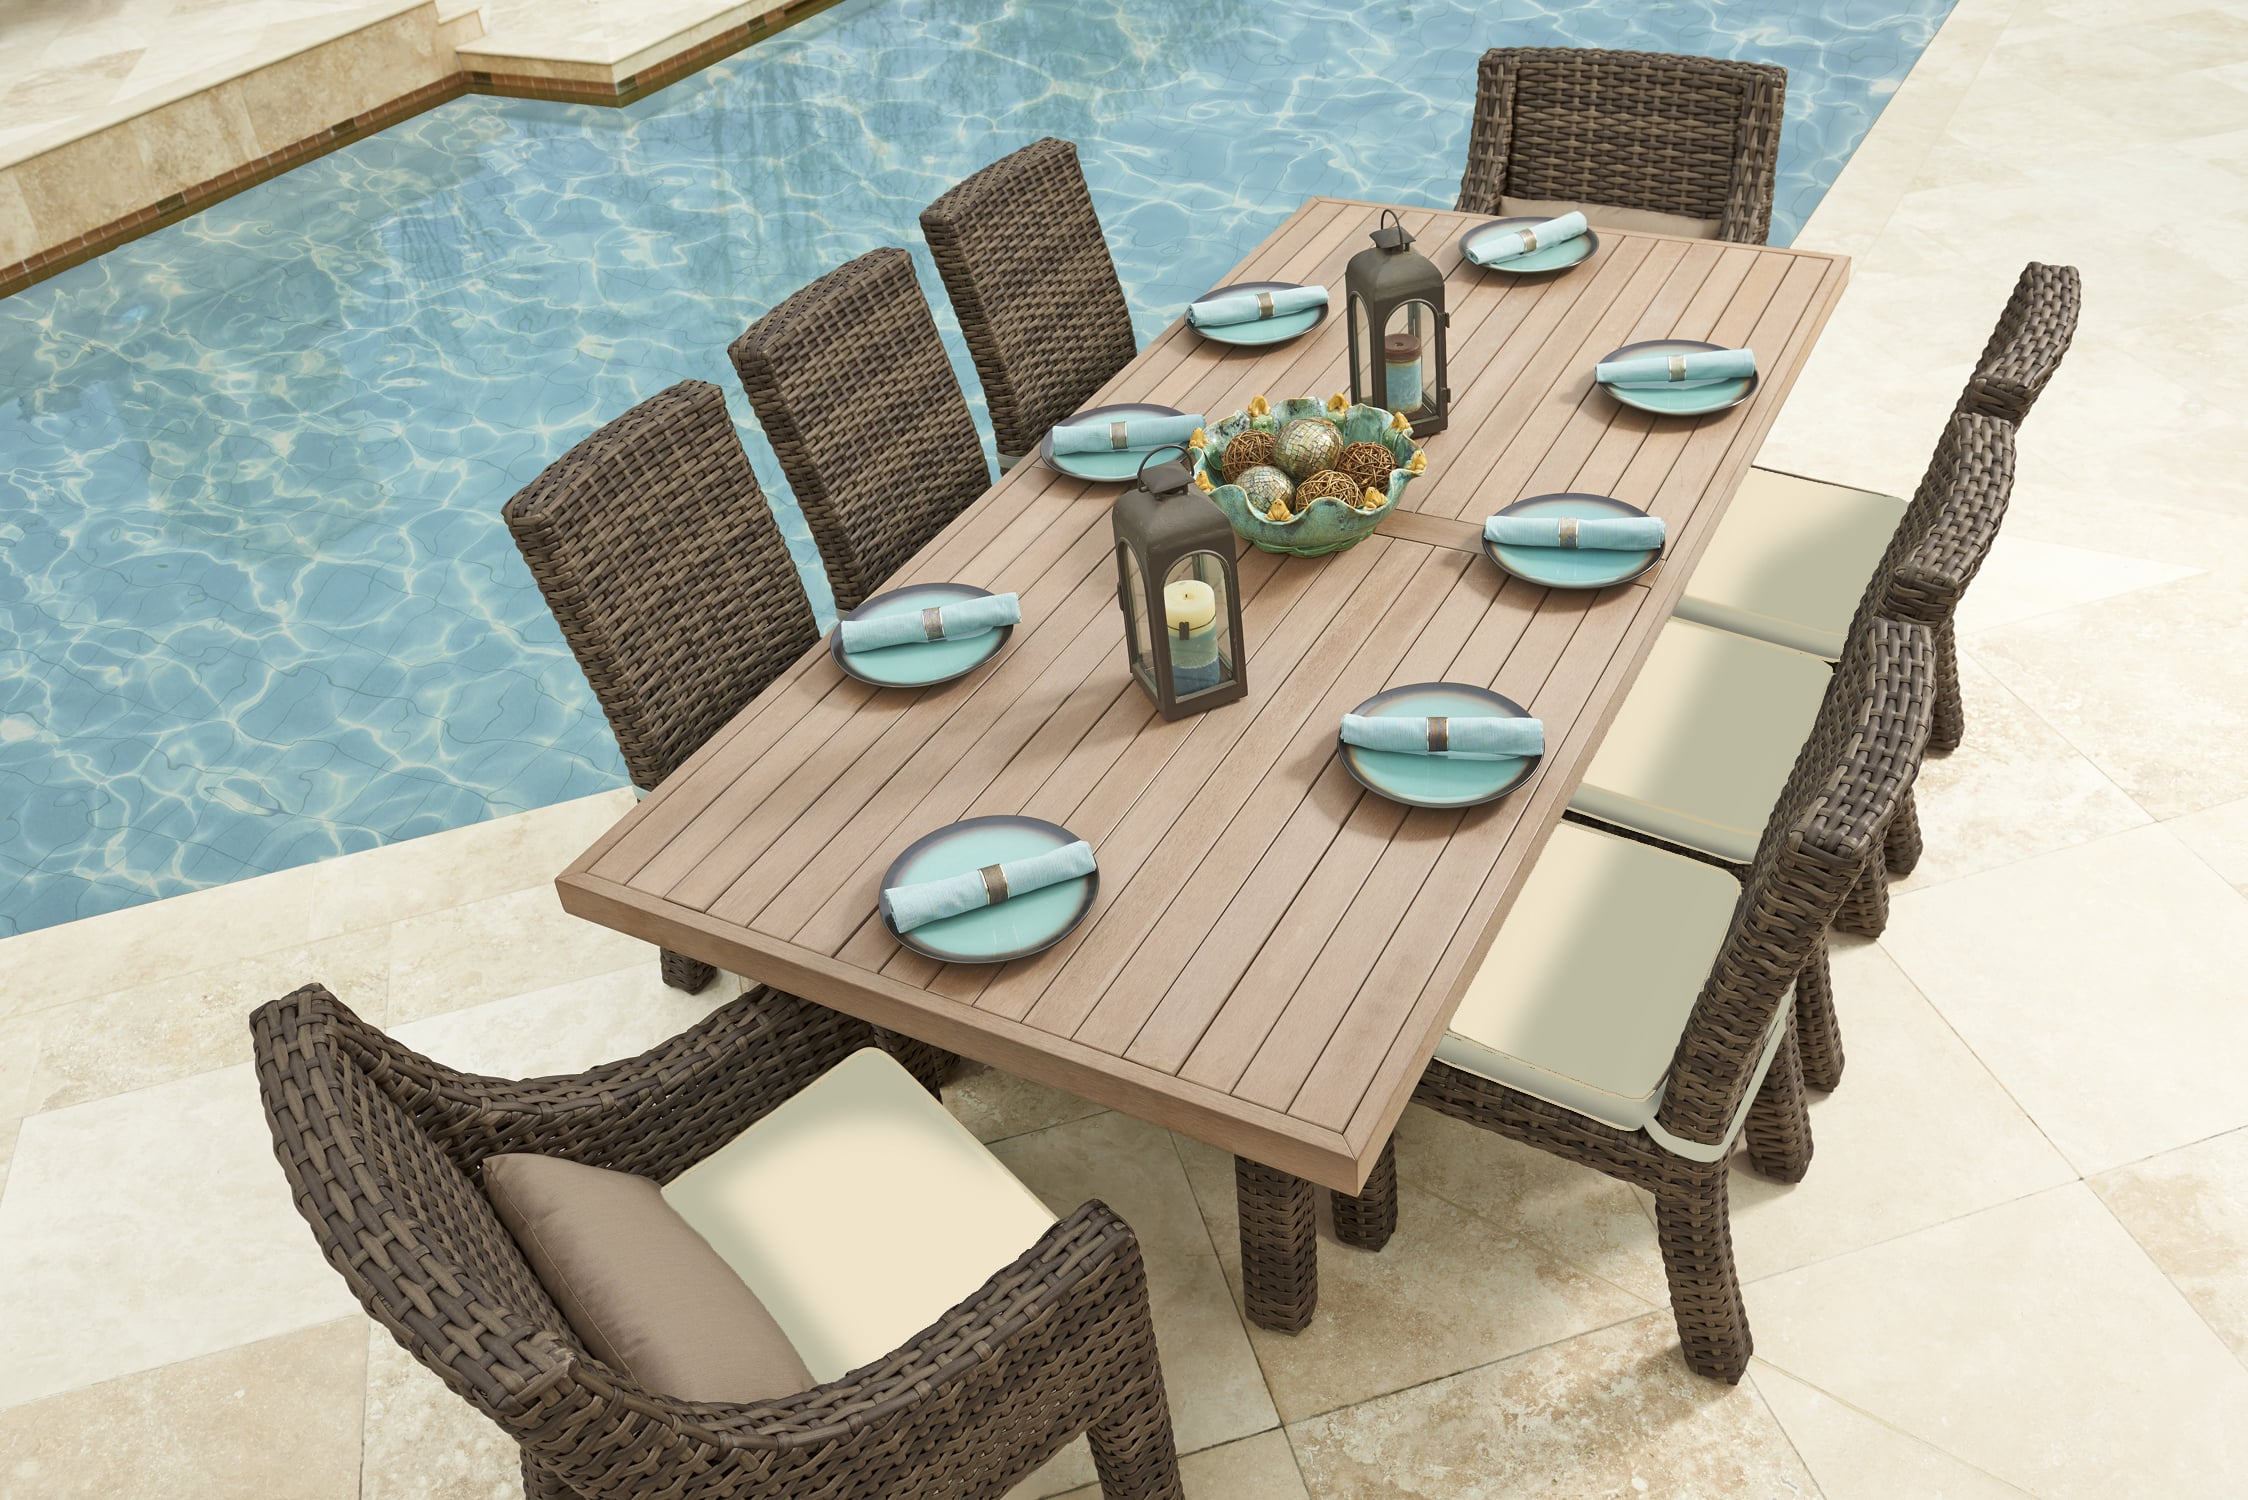 Avant Dining - North cape outdoor furniture